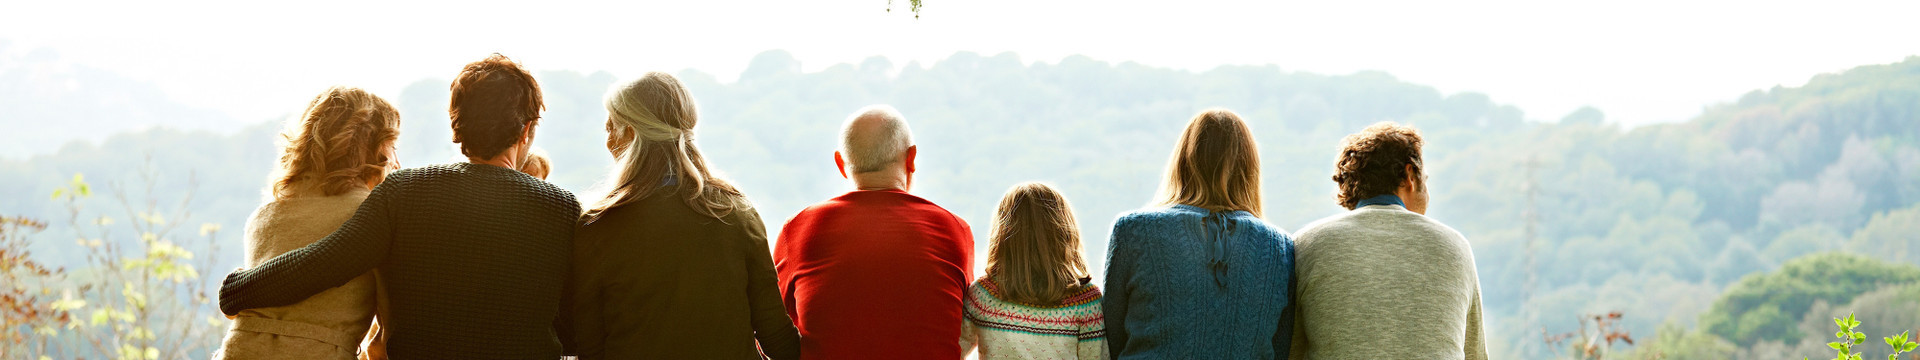 The Best Resort Near For Branson Family Reunions - family looking at a mountain landscape